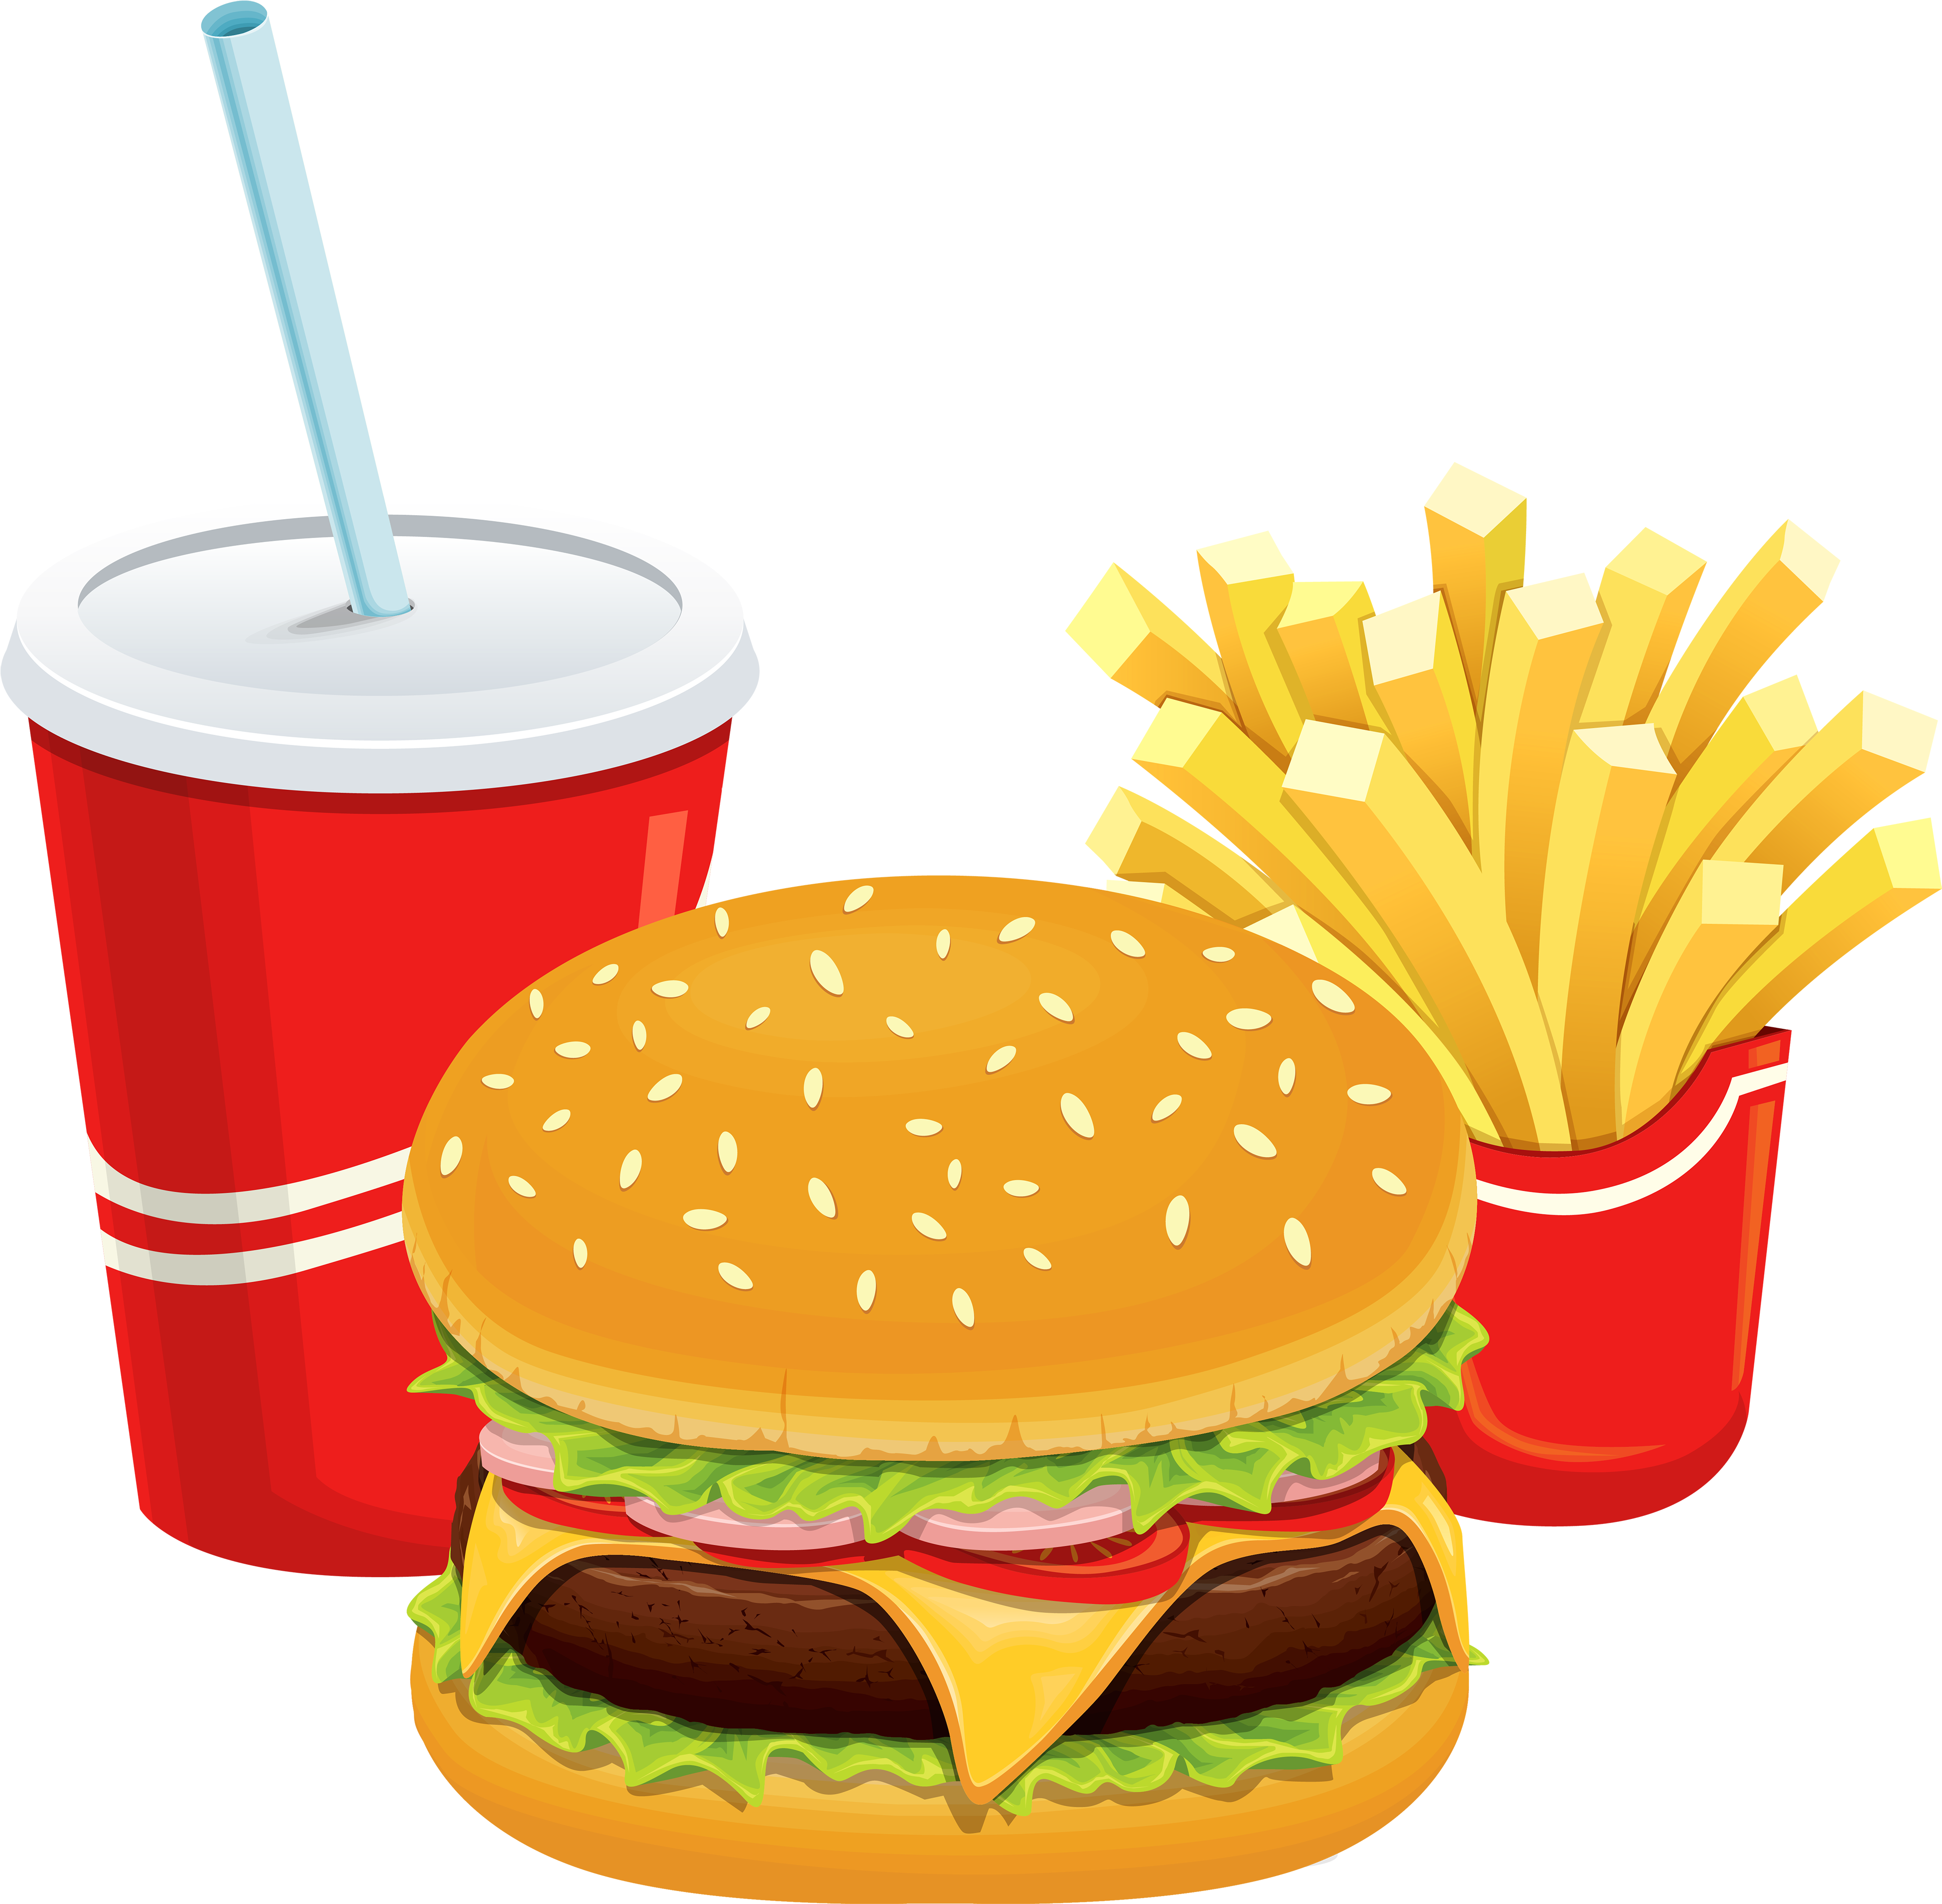 royalty free stock Man cliparthot of restaurant. Cheeseburger and fries clipart.